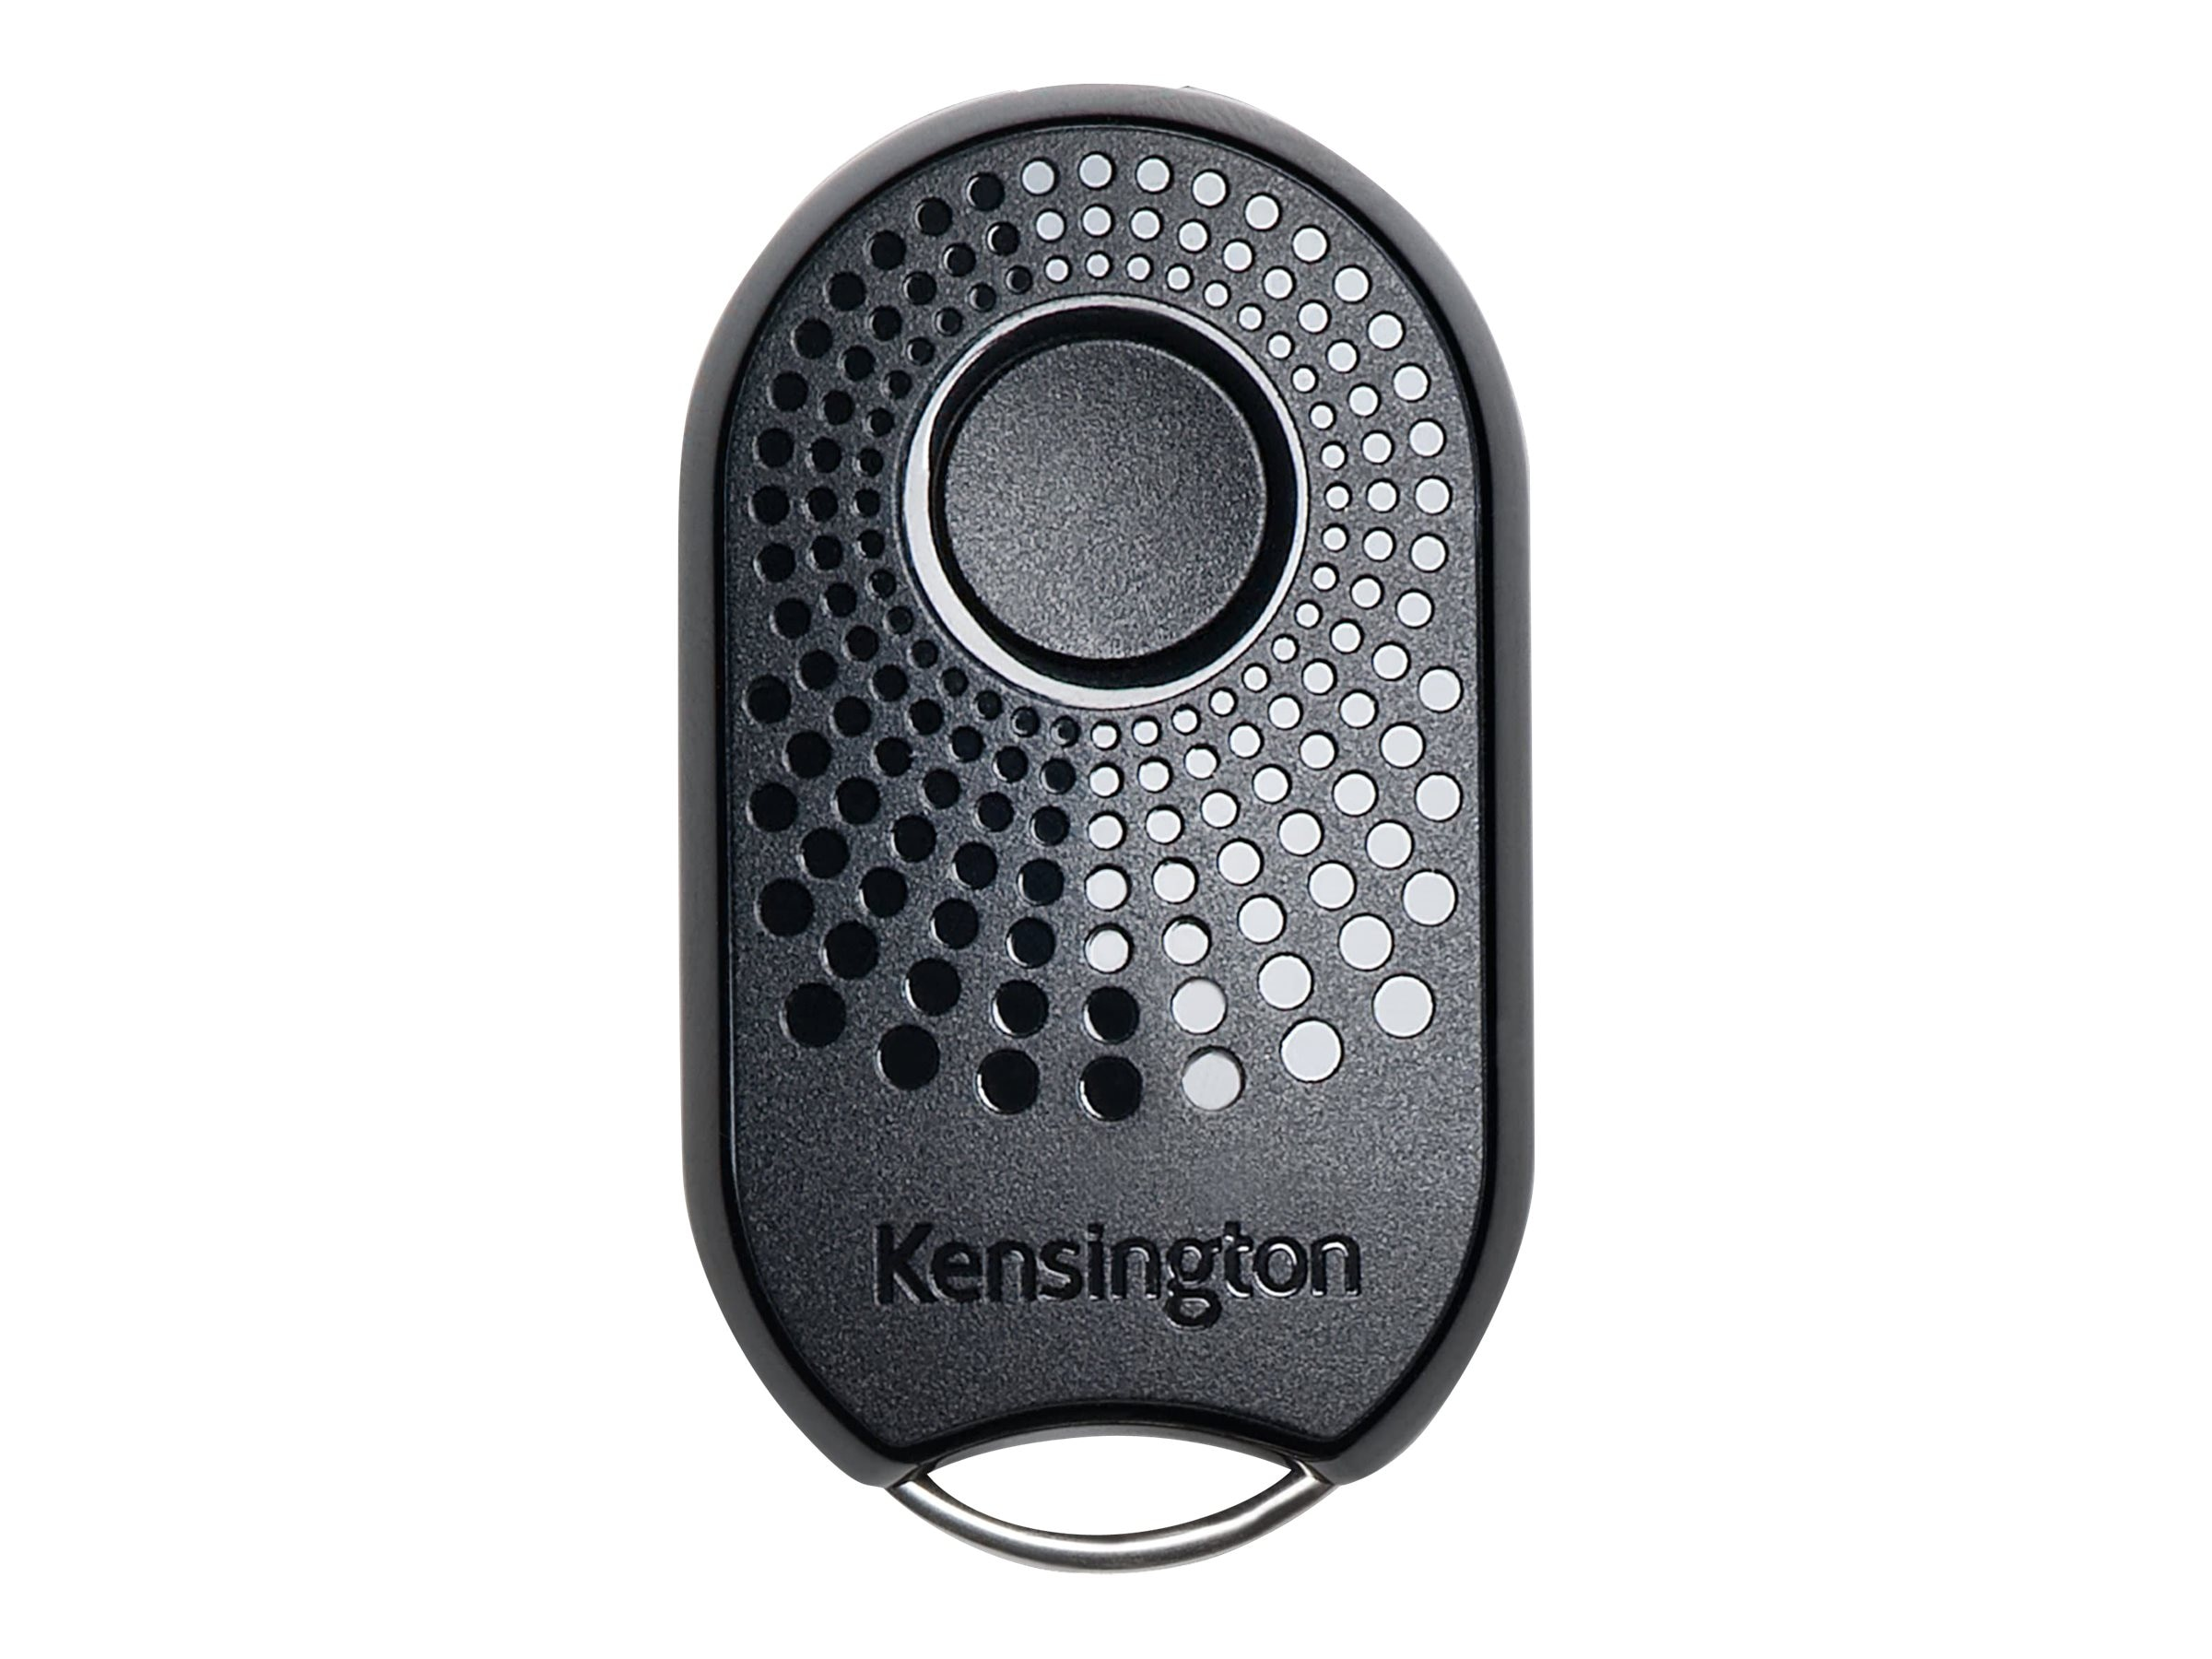 Kensington Proximo Key Fob Bluetooth Tracker for Samsung, iPhone, K97150US